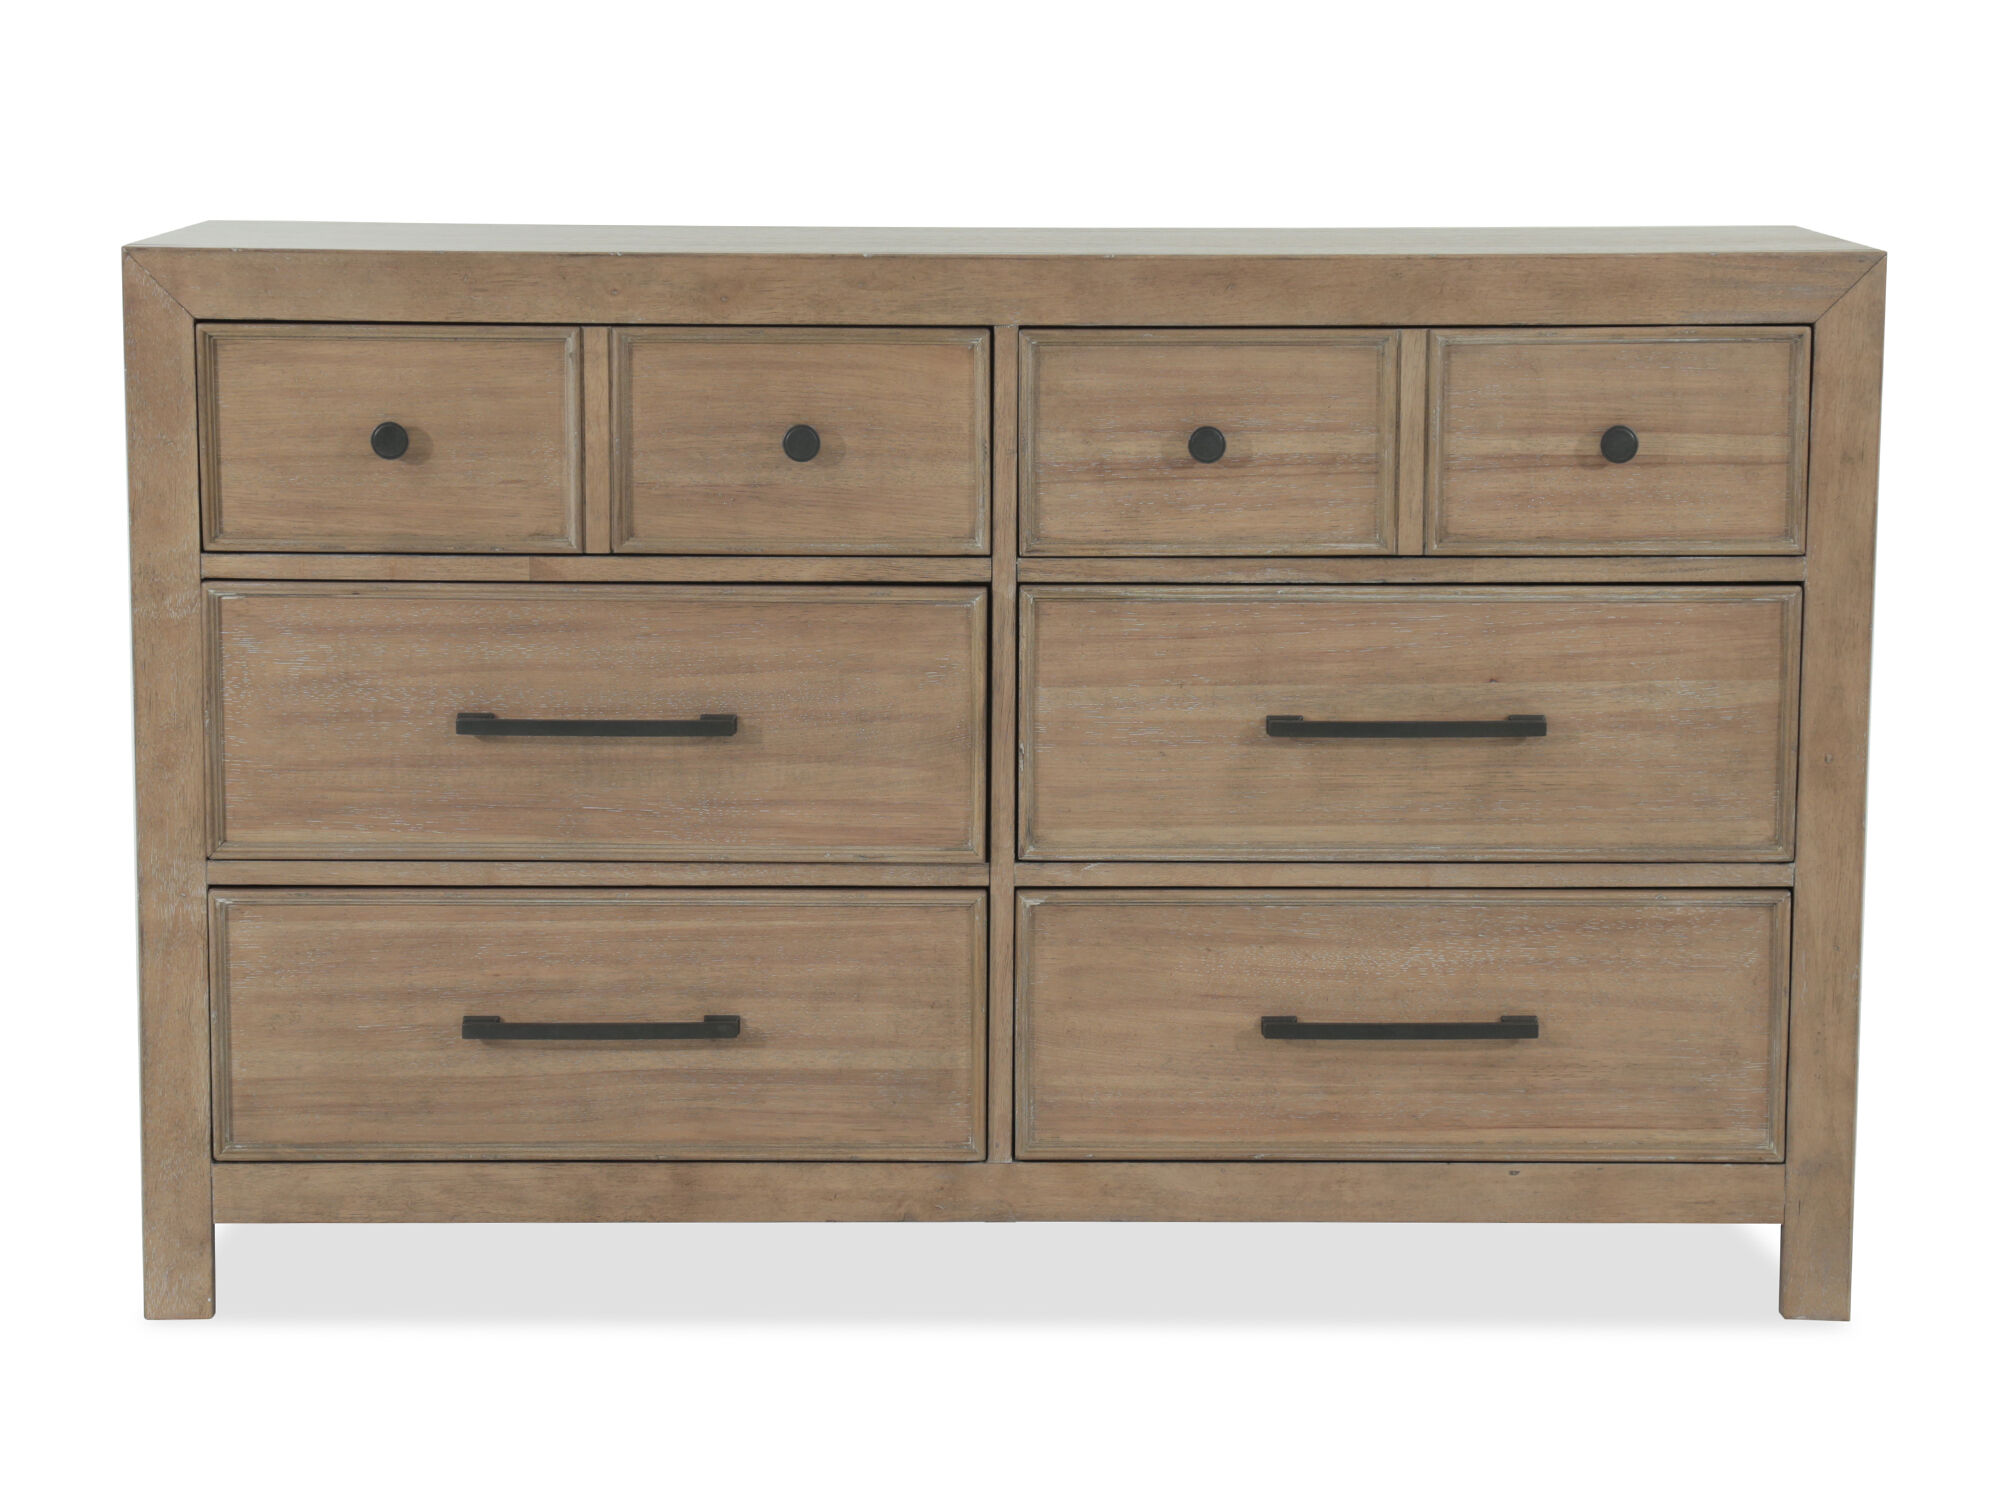 EightDrawer Contemporary Youth Dresser in Light Brown